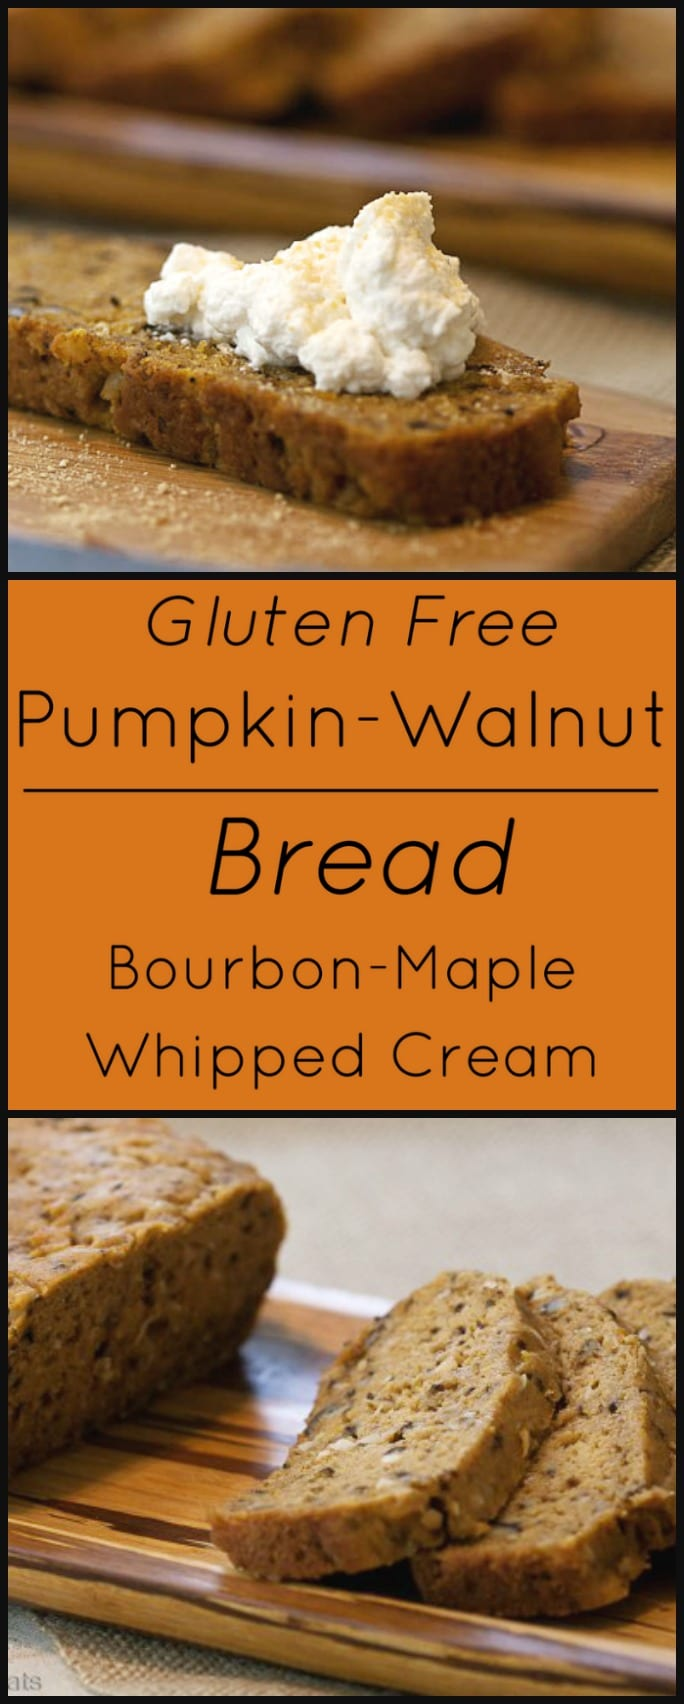 Gluten Free Pumpkin Coconut Walnut Bread with Bourbon Maple Whipped Cream.